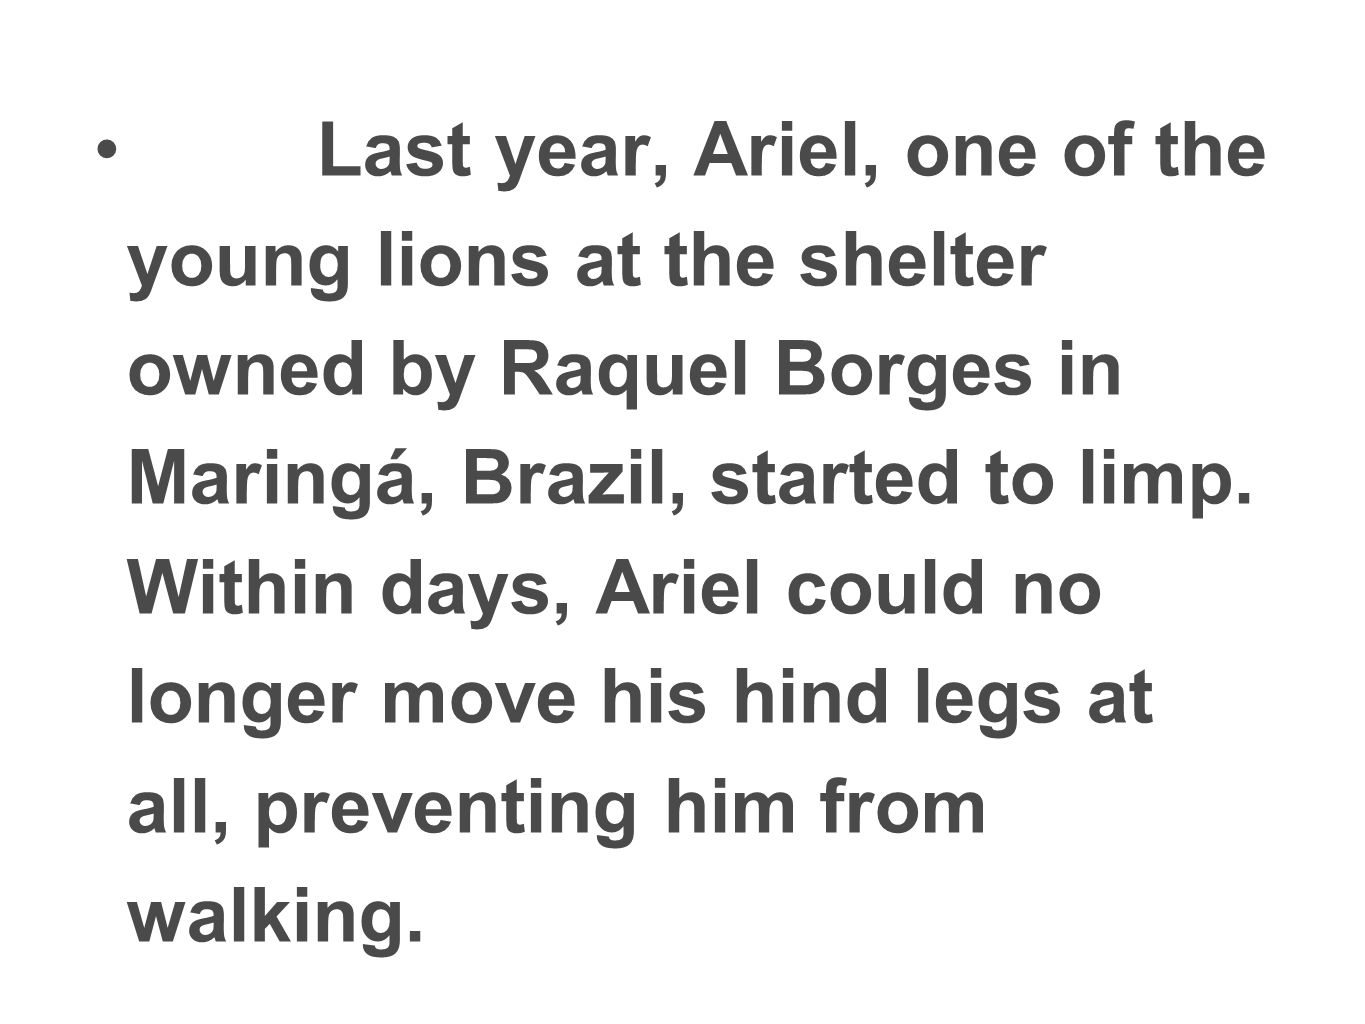 Last year, Ariel, one of the young lions at the shelter owned by Raquel Borges in Maringá, Brazil, started to limp. Within days, Ariel could no longer